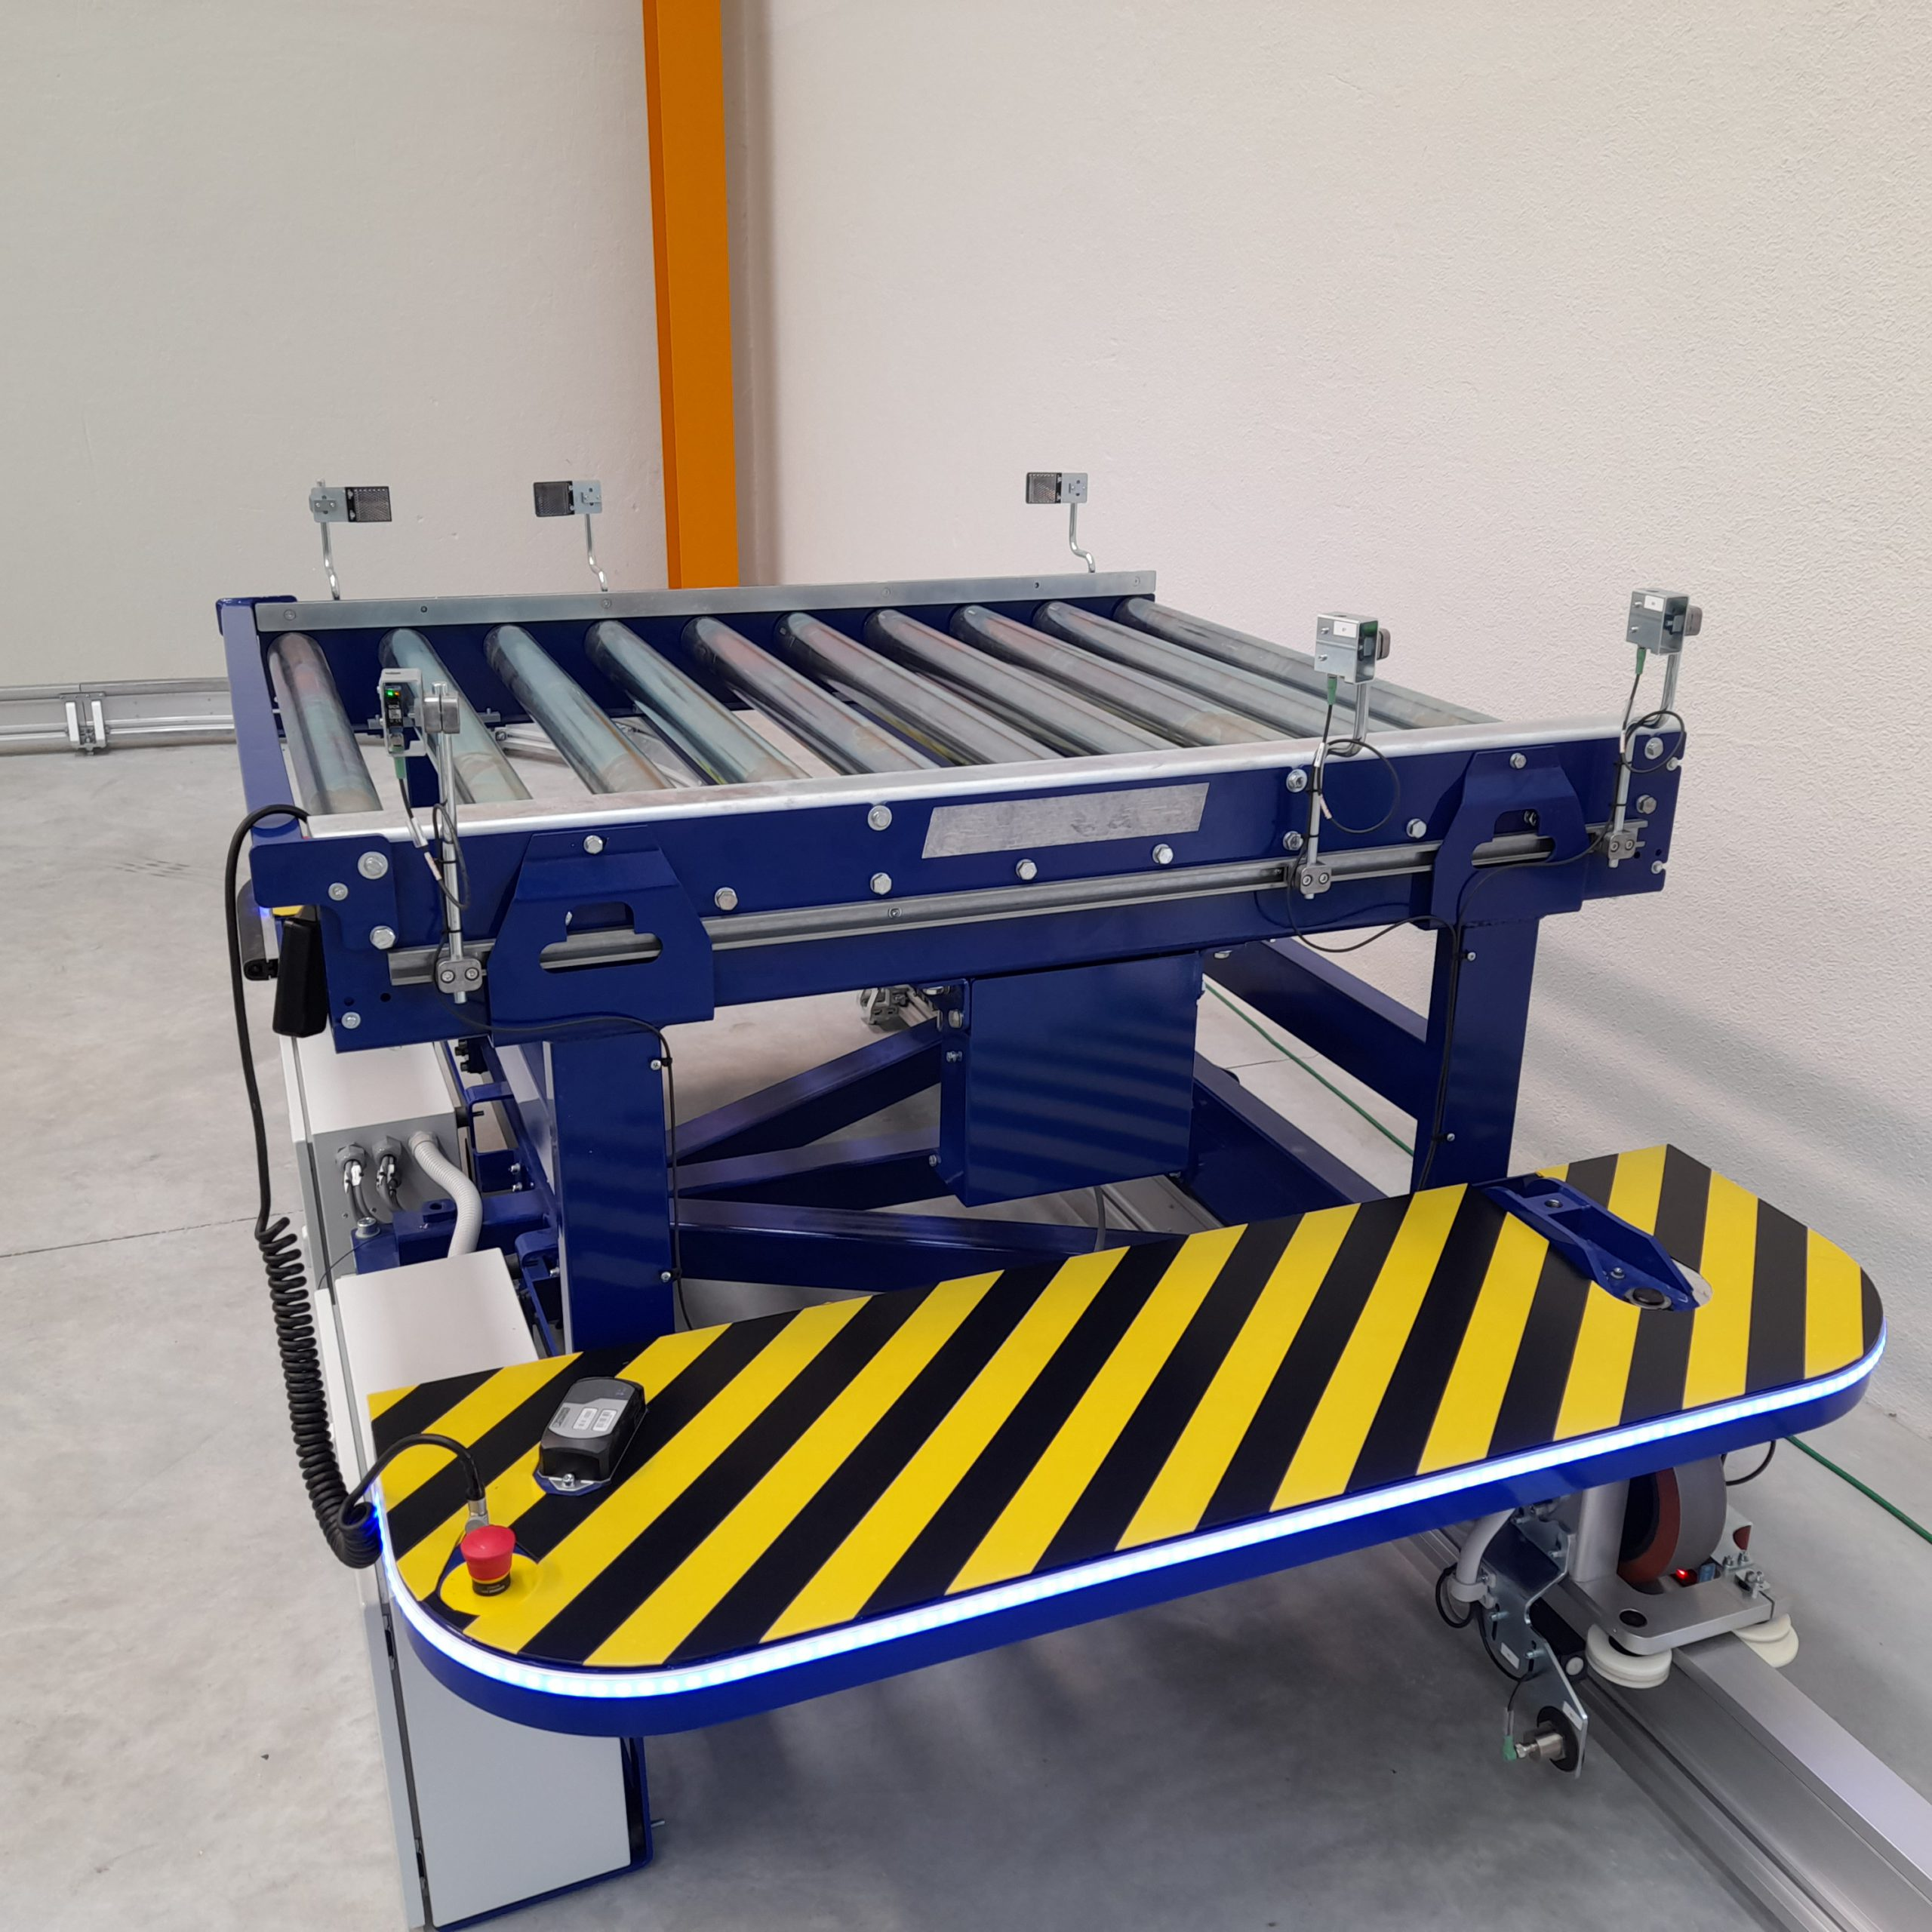 Monorail image ASRS